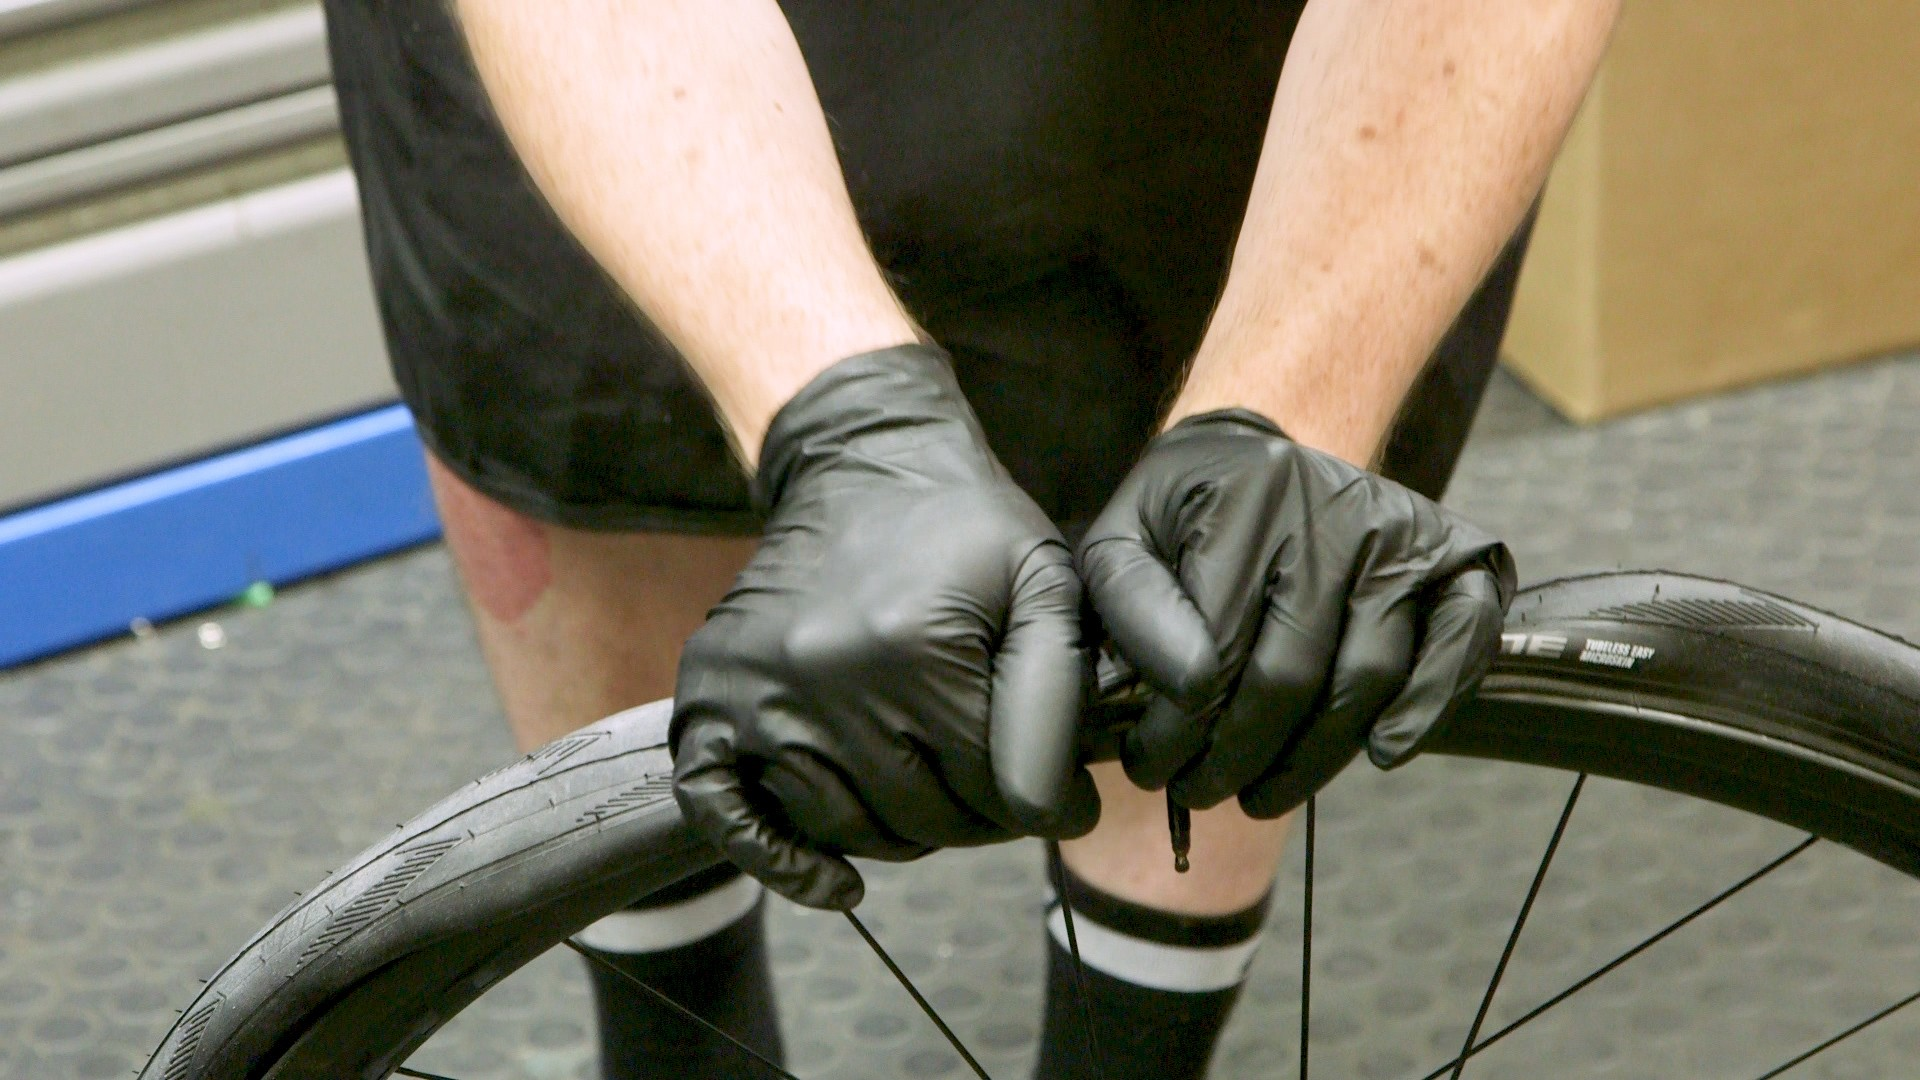 As there's no tube to pinch, you can be a bit more liberal with your use of tire levers, though you'll gain big kudos if you can fit tires without them